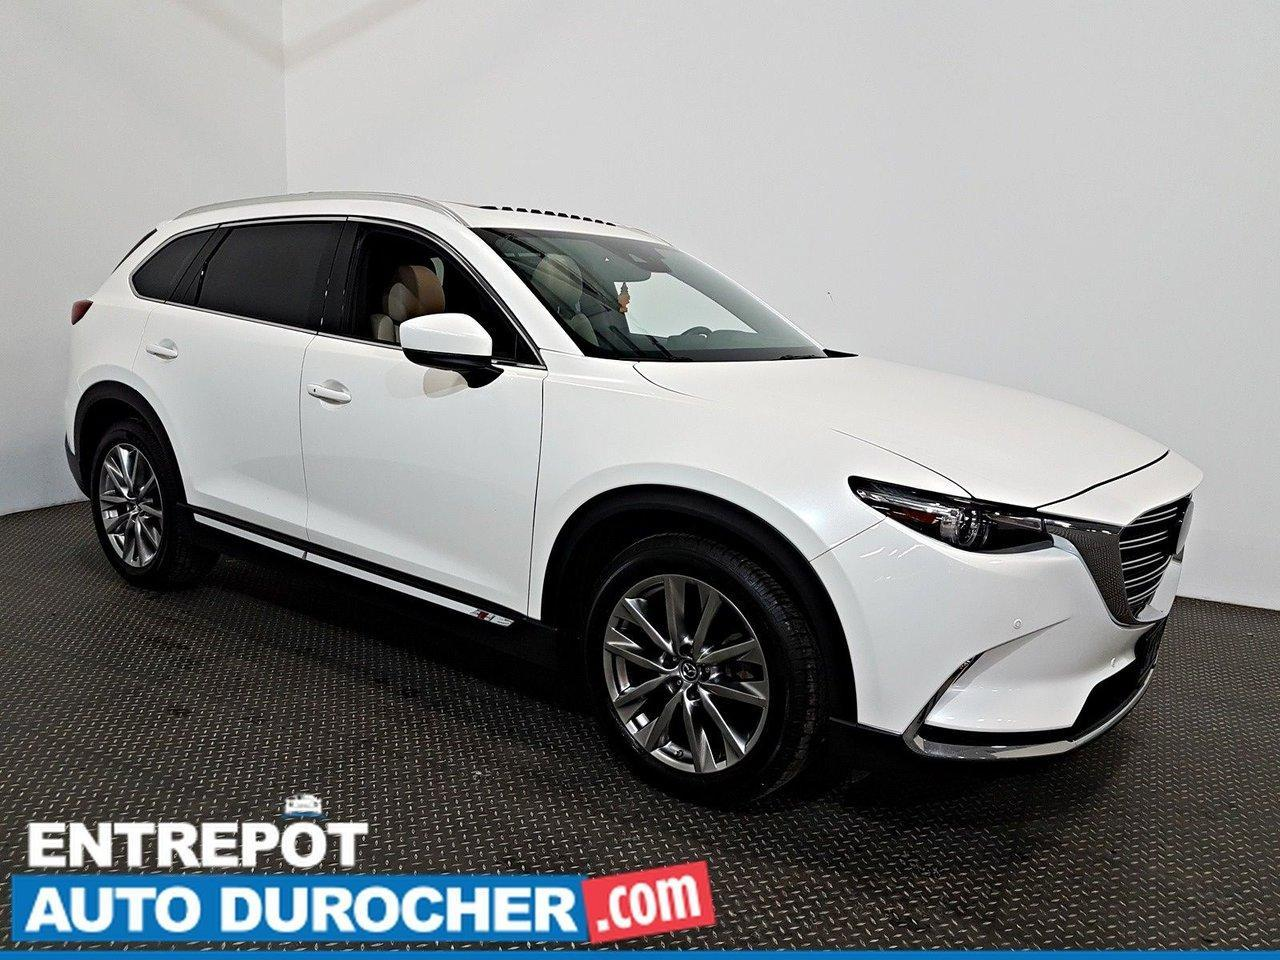 used 2018 mazda cx-9 gt awd navigation - toit ouvrant - a c 7 passagers for sale in laval, quebec carpages.ca